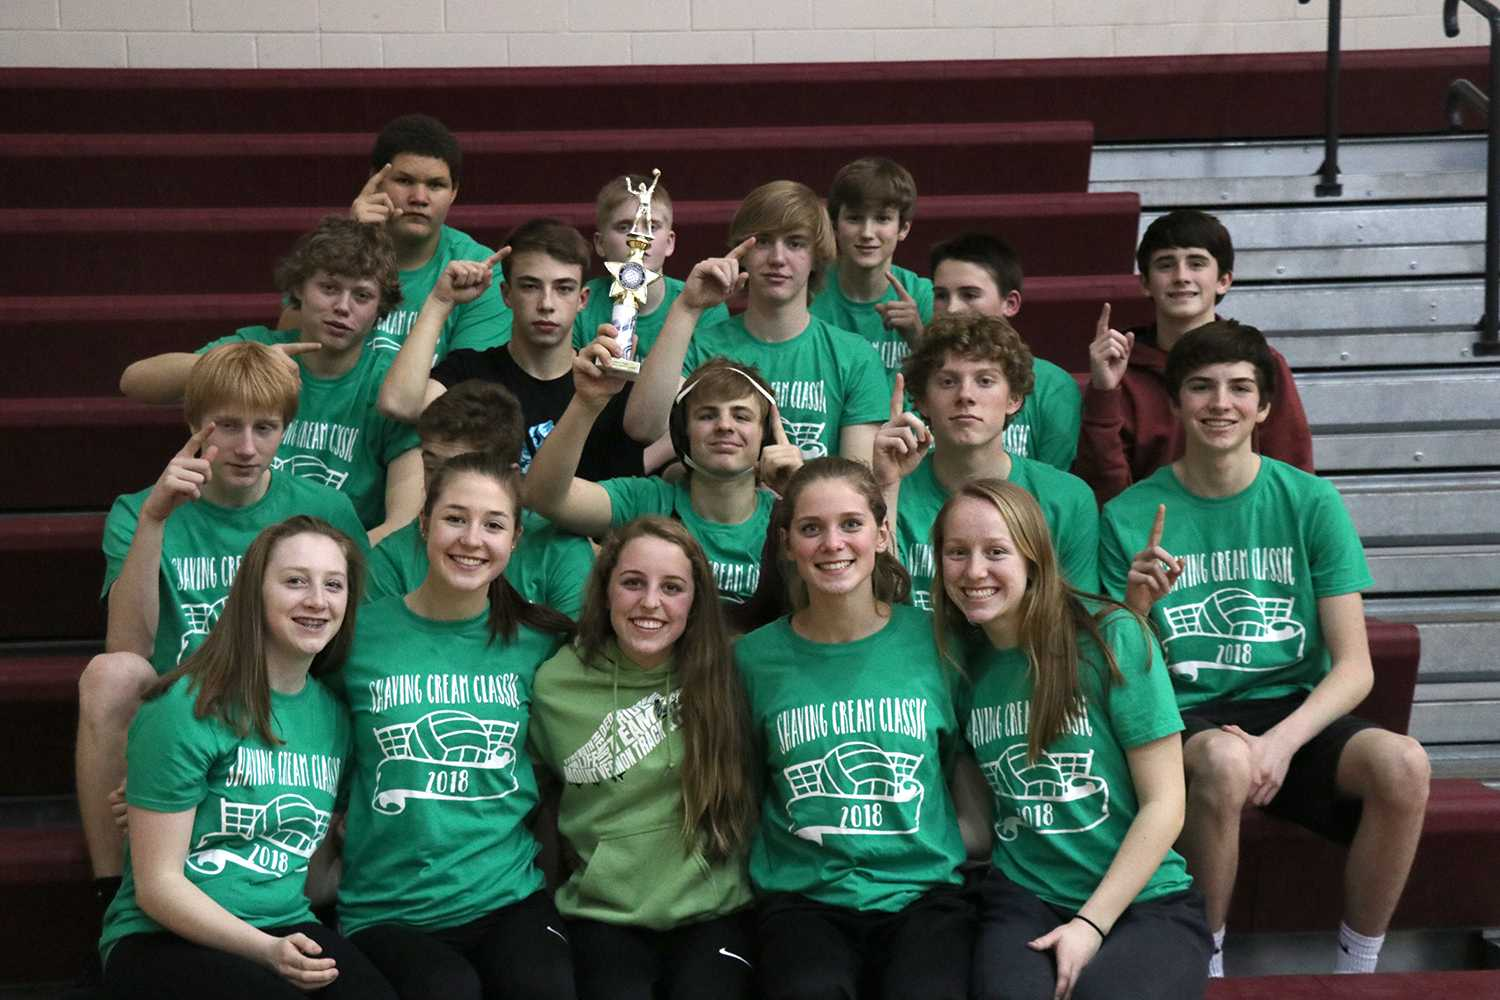 Freshman Team Wins Shaving Cream Classic